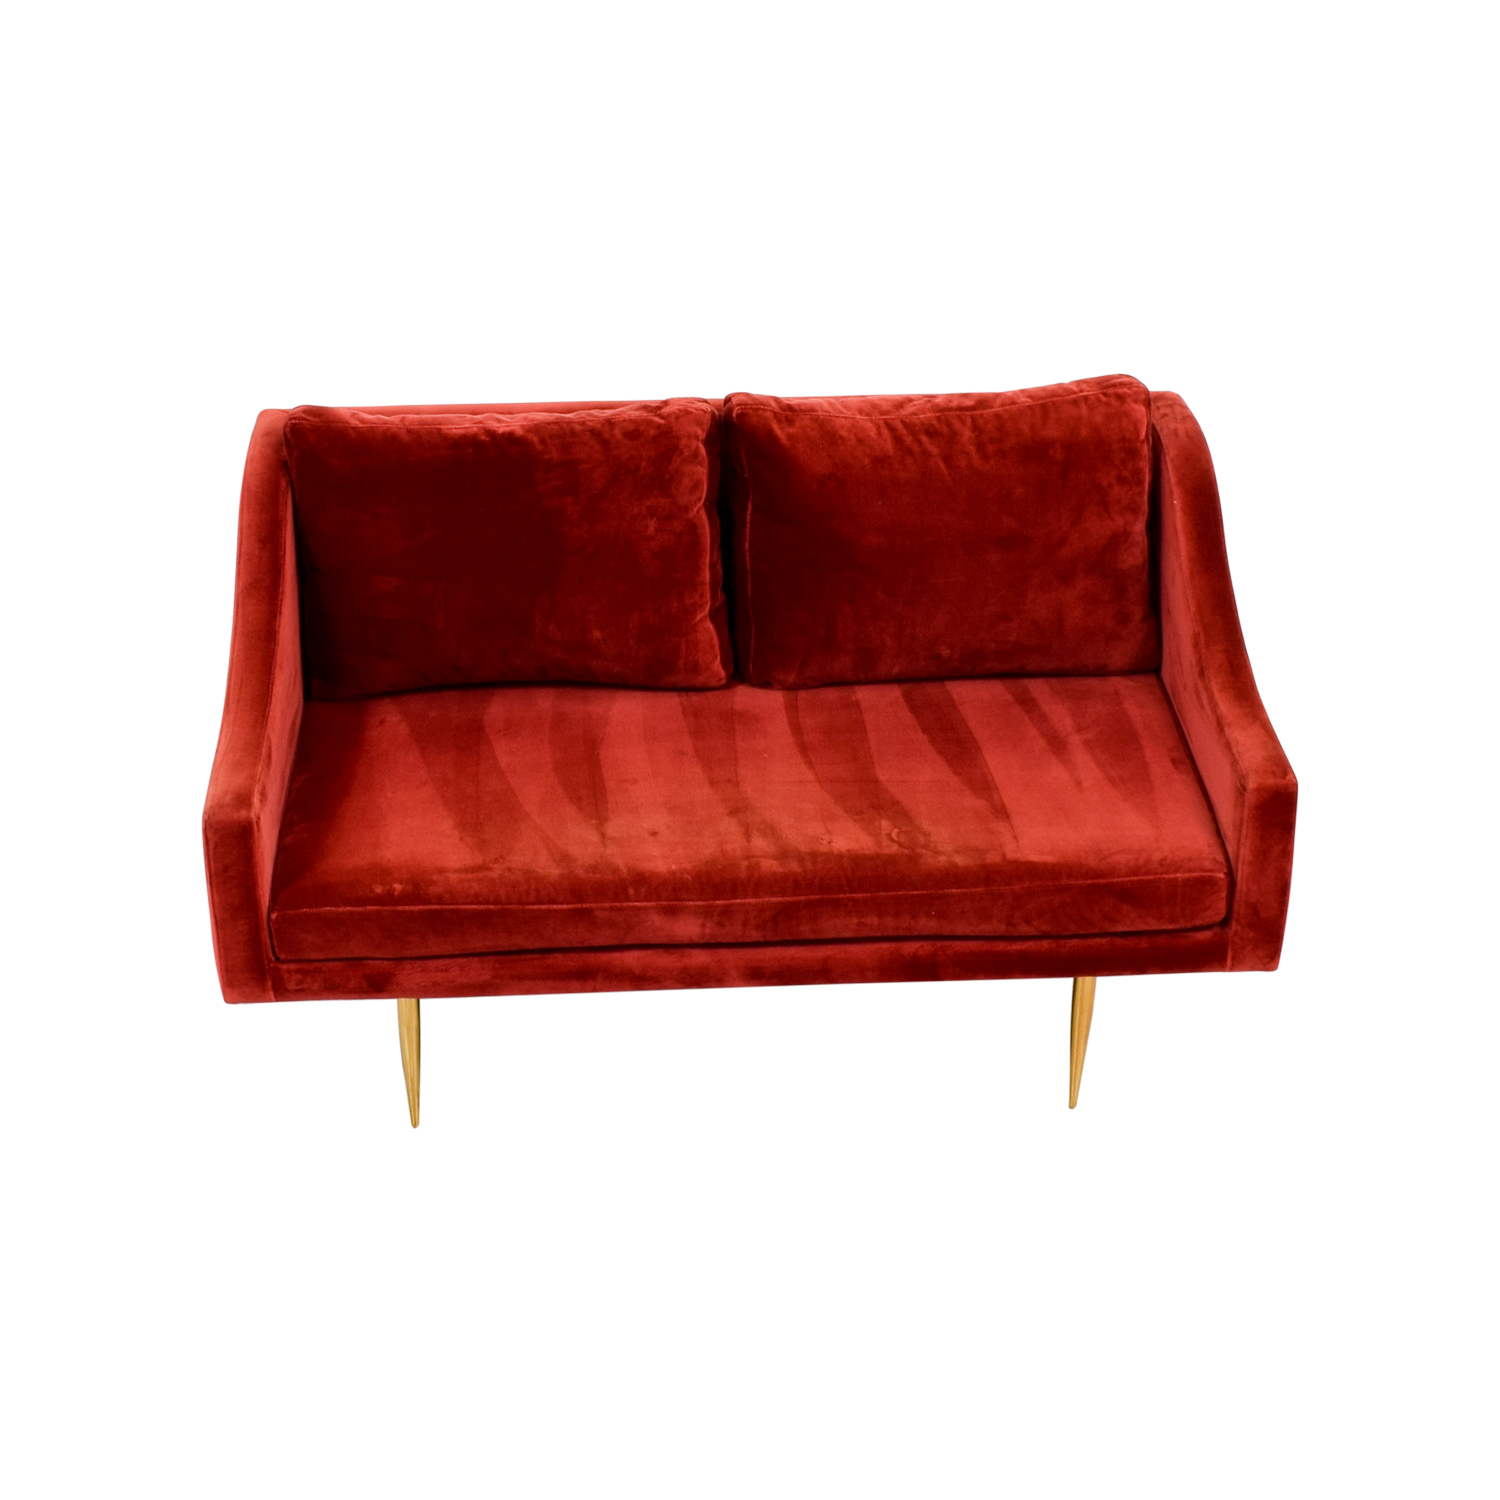 shop Organic Modernism Mid-century Modern Red Loveseat Organic Modernism